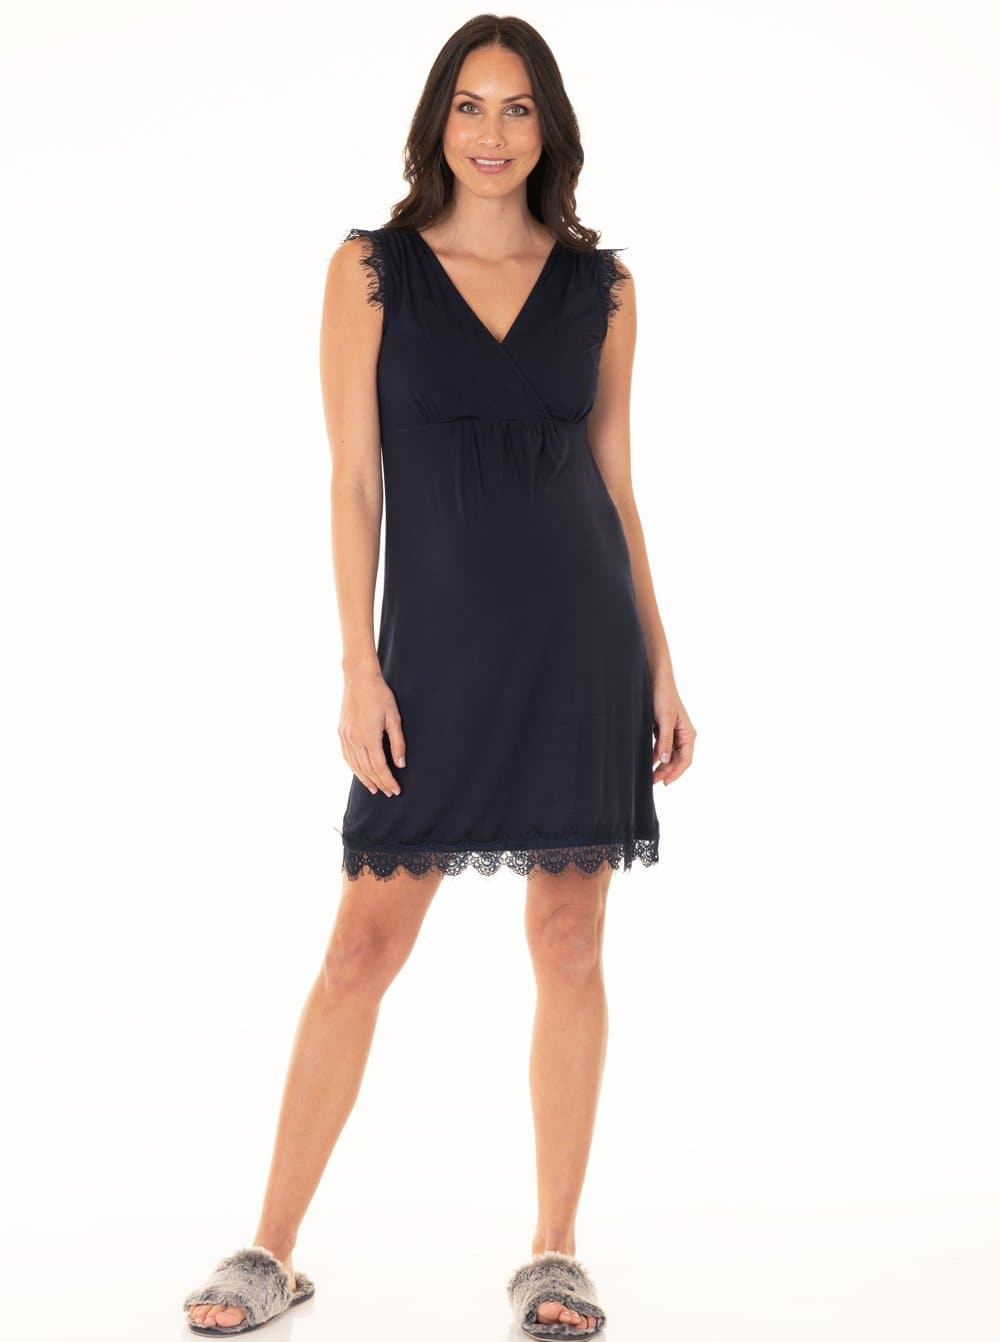 Maternity Nursing Sleep Lace Nightie Slinky Dress - Navy